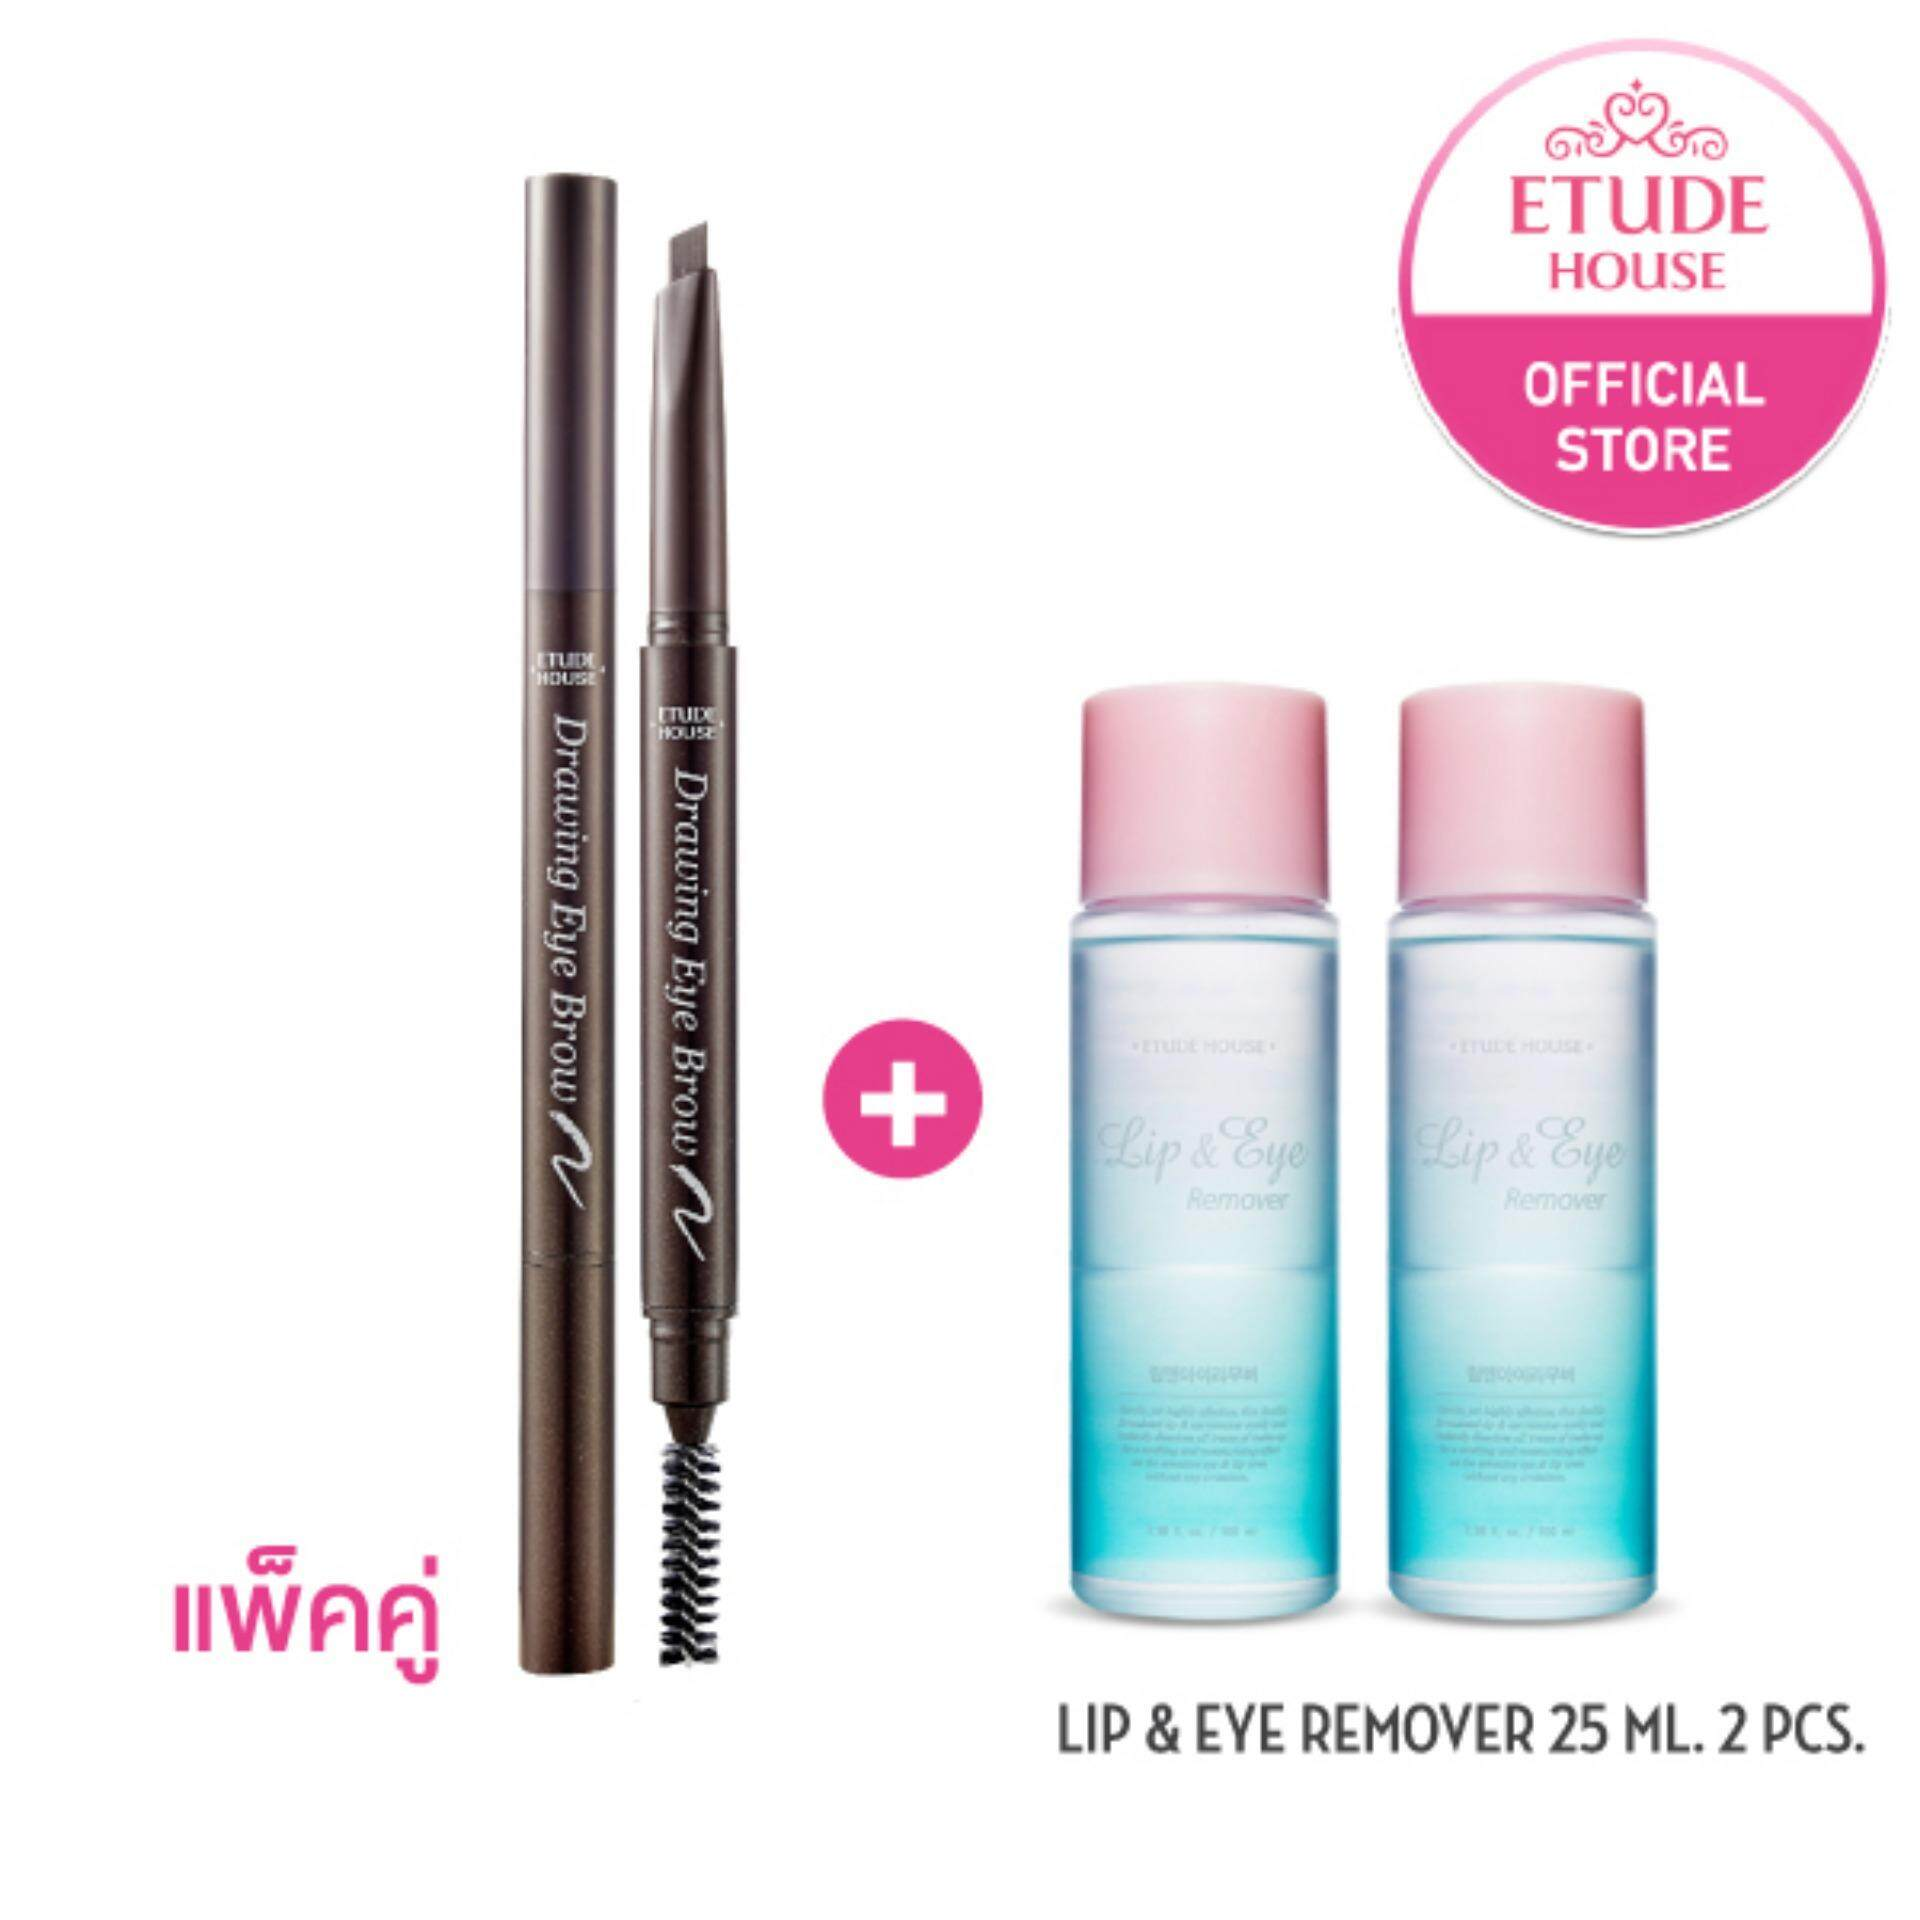 ส่วนลด Etude House Drawing Eye Brow 4 Dark Gray แพ็คคู่ Etude House